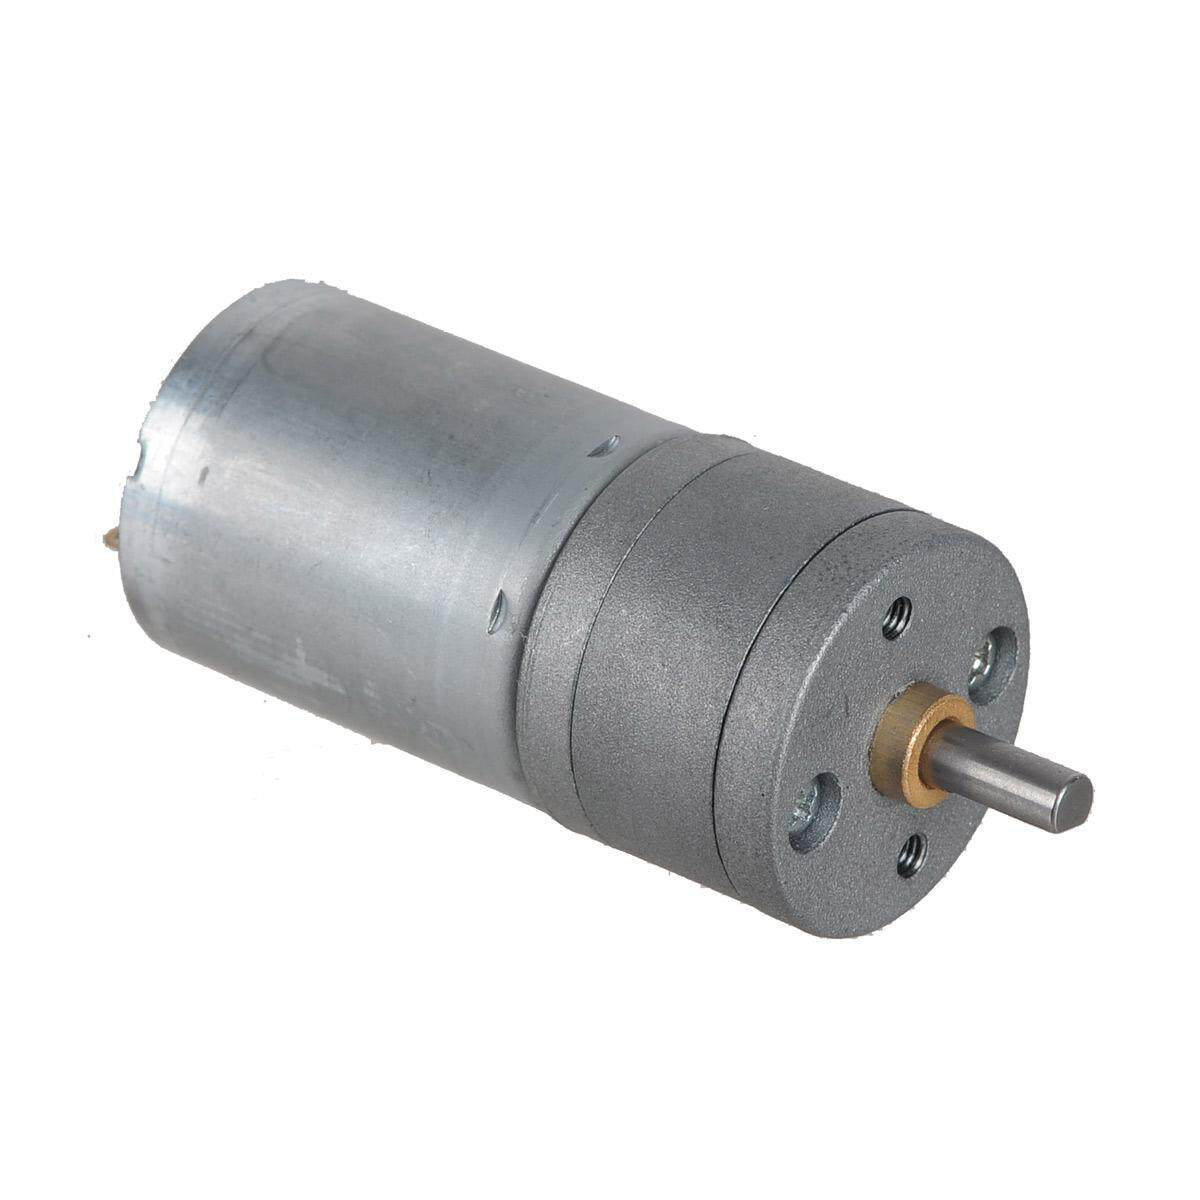 Zndiy-Bry Dc 12v 400rpm / Dc 6v 200rpm High Torque Gear Motor - Silver - Intl By Infinite-Deals.